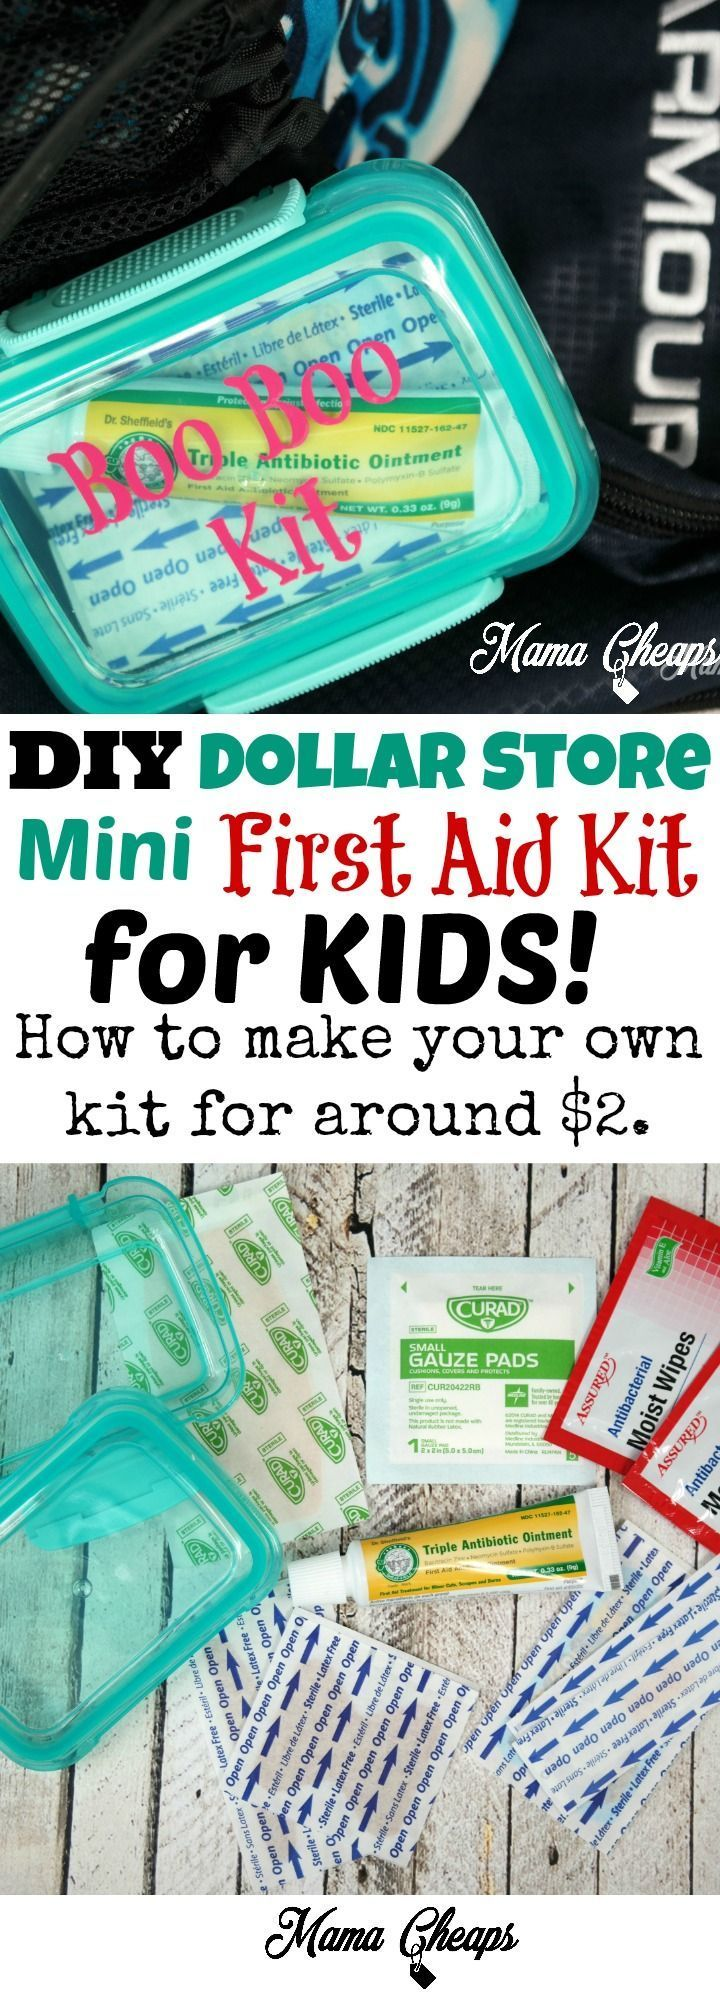 DIY Dollar Store Mini First Aid Kit for Kids | Mama Cheaps